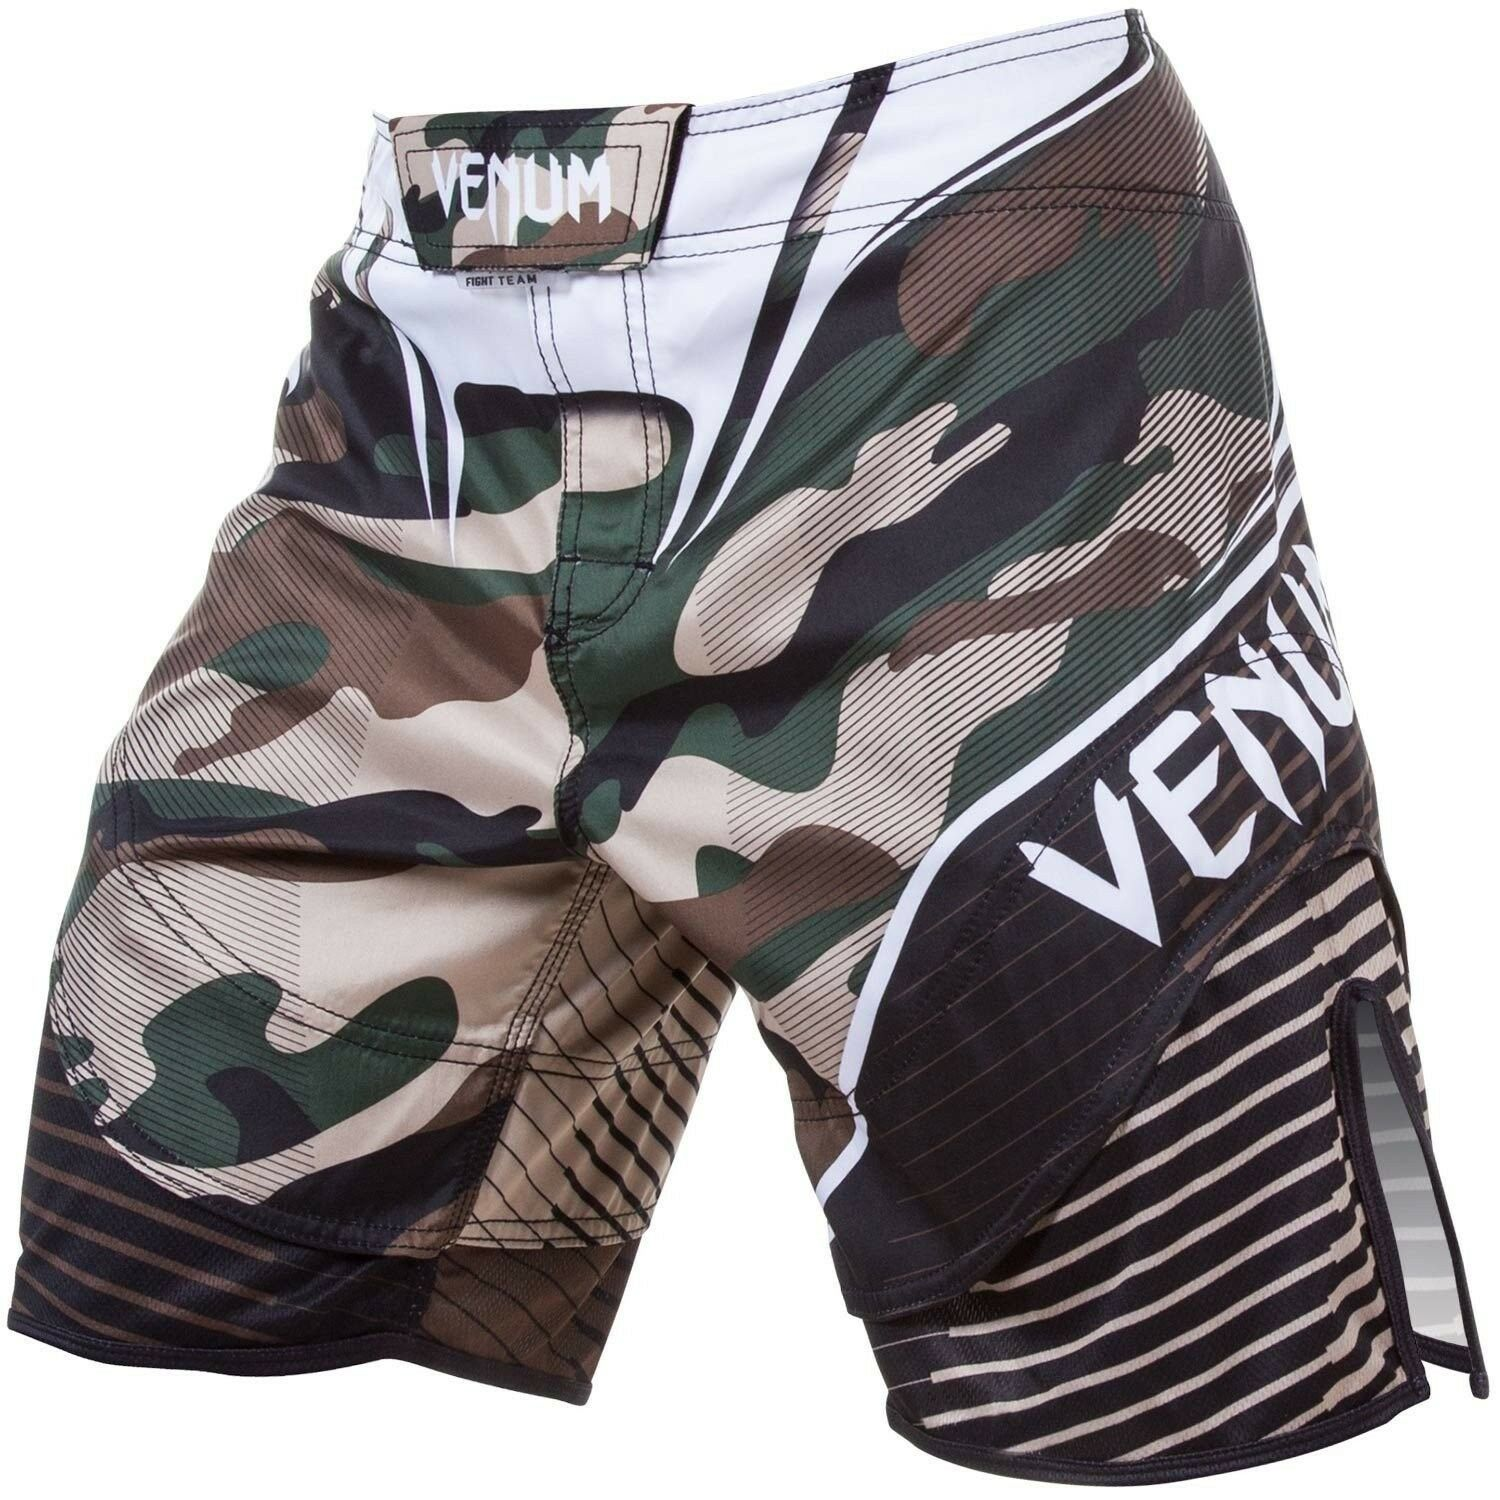 Venum Camo Hero Fight Shorts - Grün braun, Gr. S - XL. Grappling. MMA.